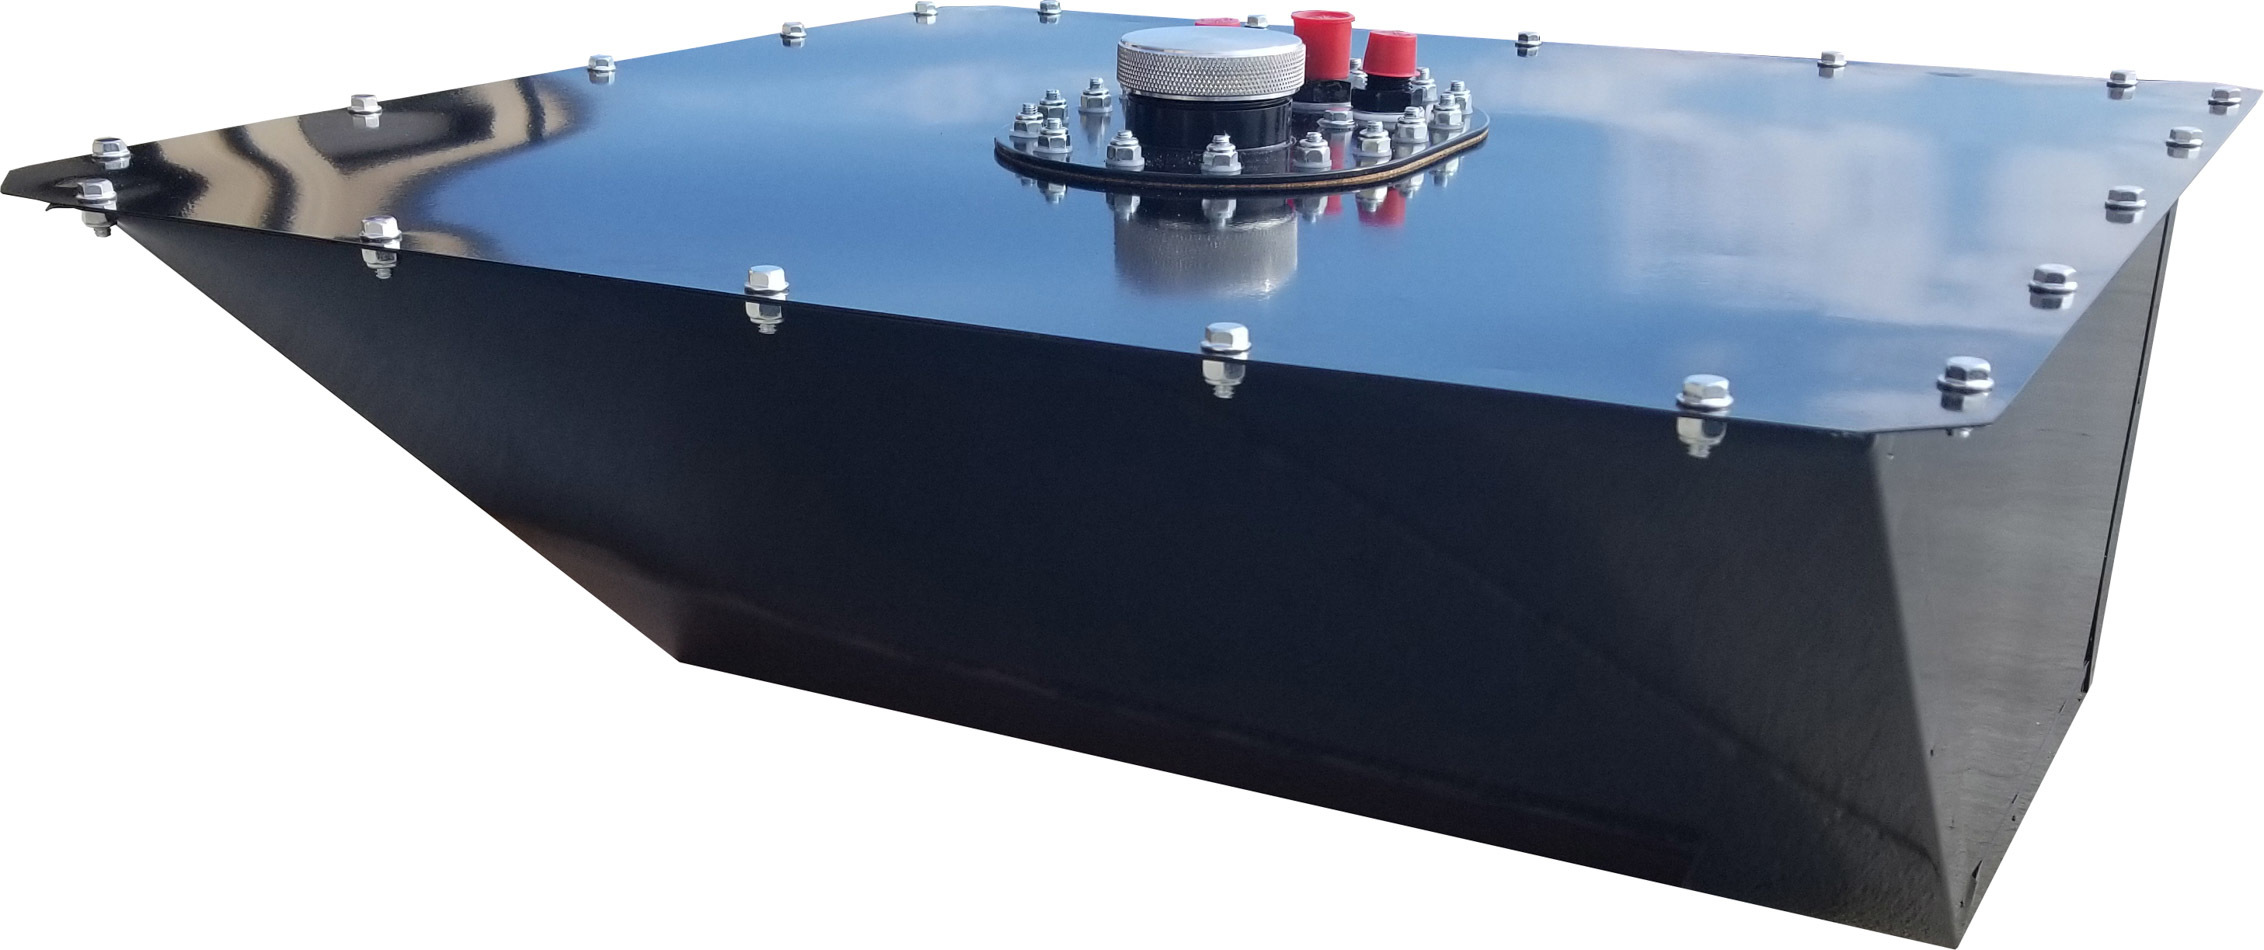 Rci Fuel Cell Wedged 16 Gal Black 10an Pickup